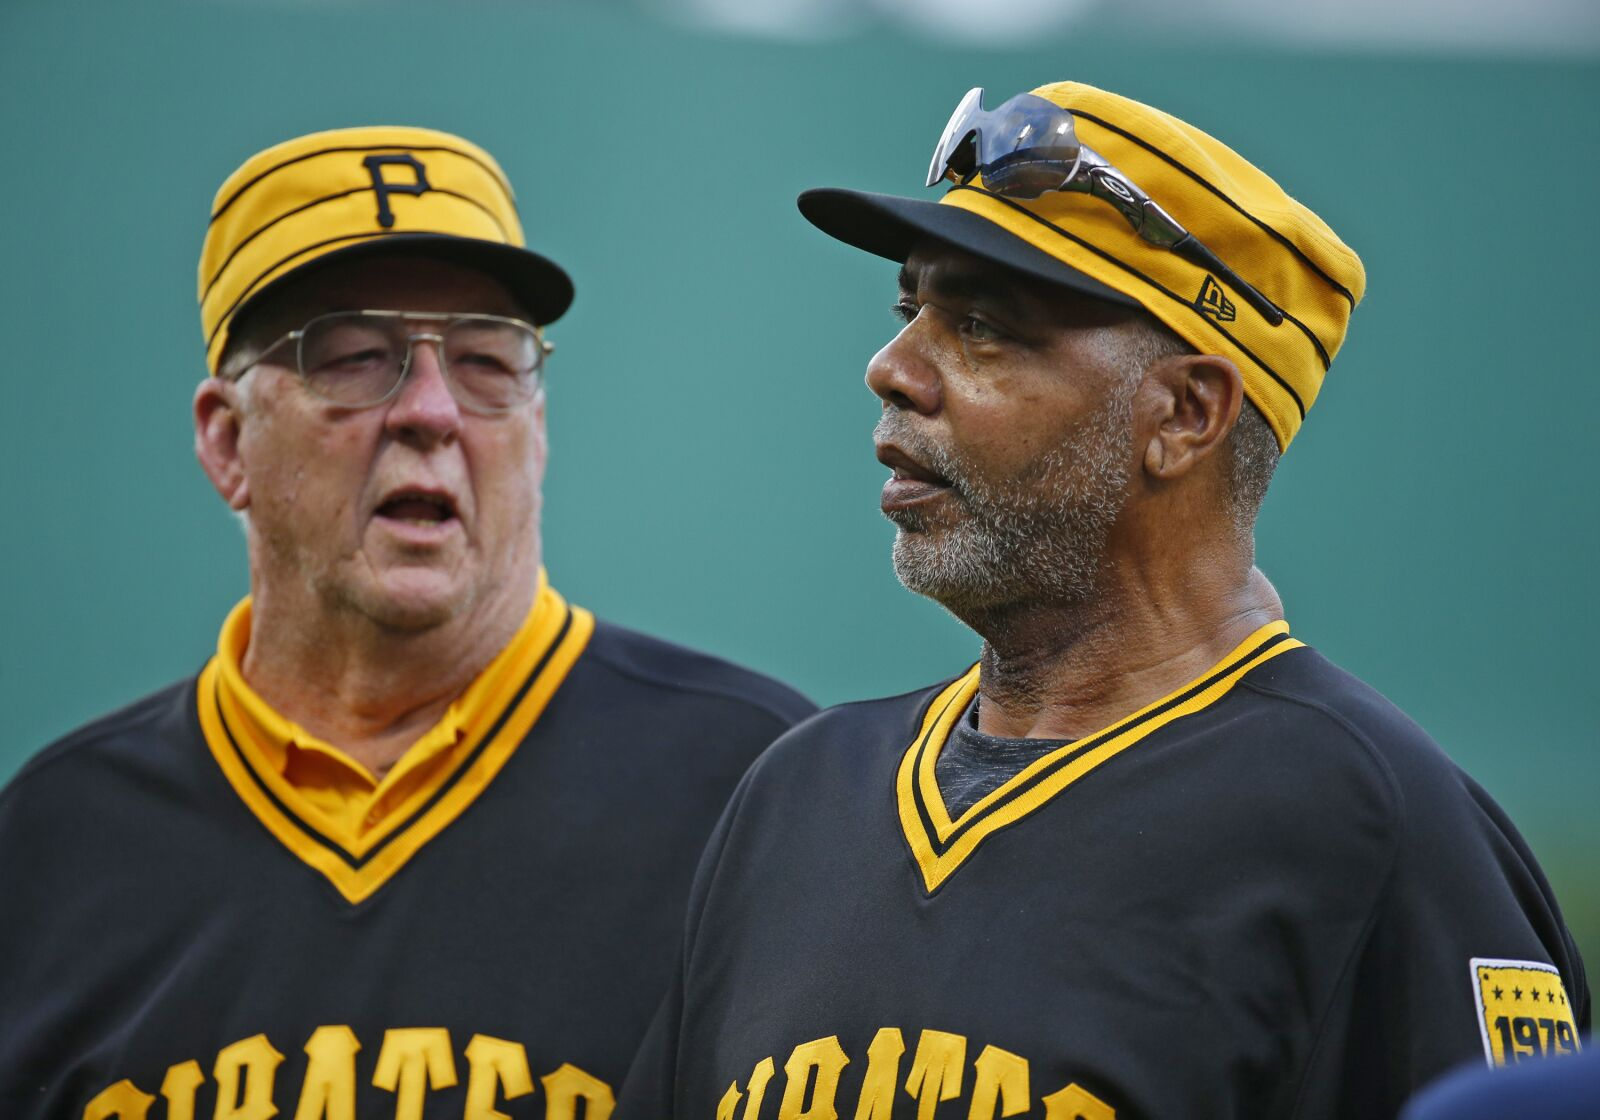 Pittsburgh Pirates: Dave Parker Snubbed from Hall of Fame